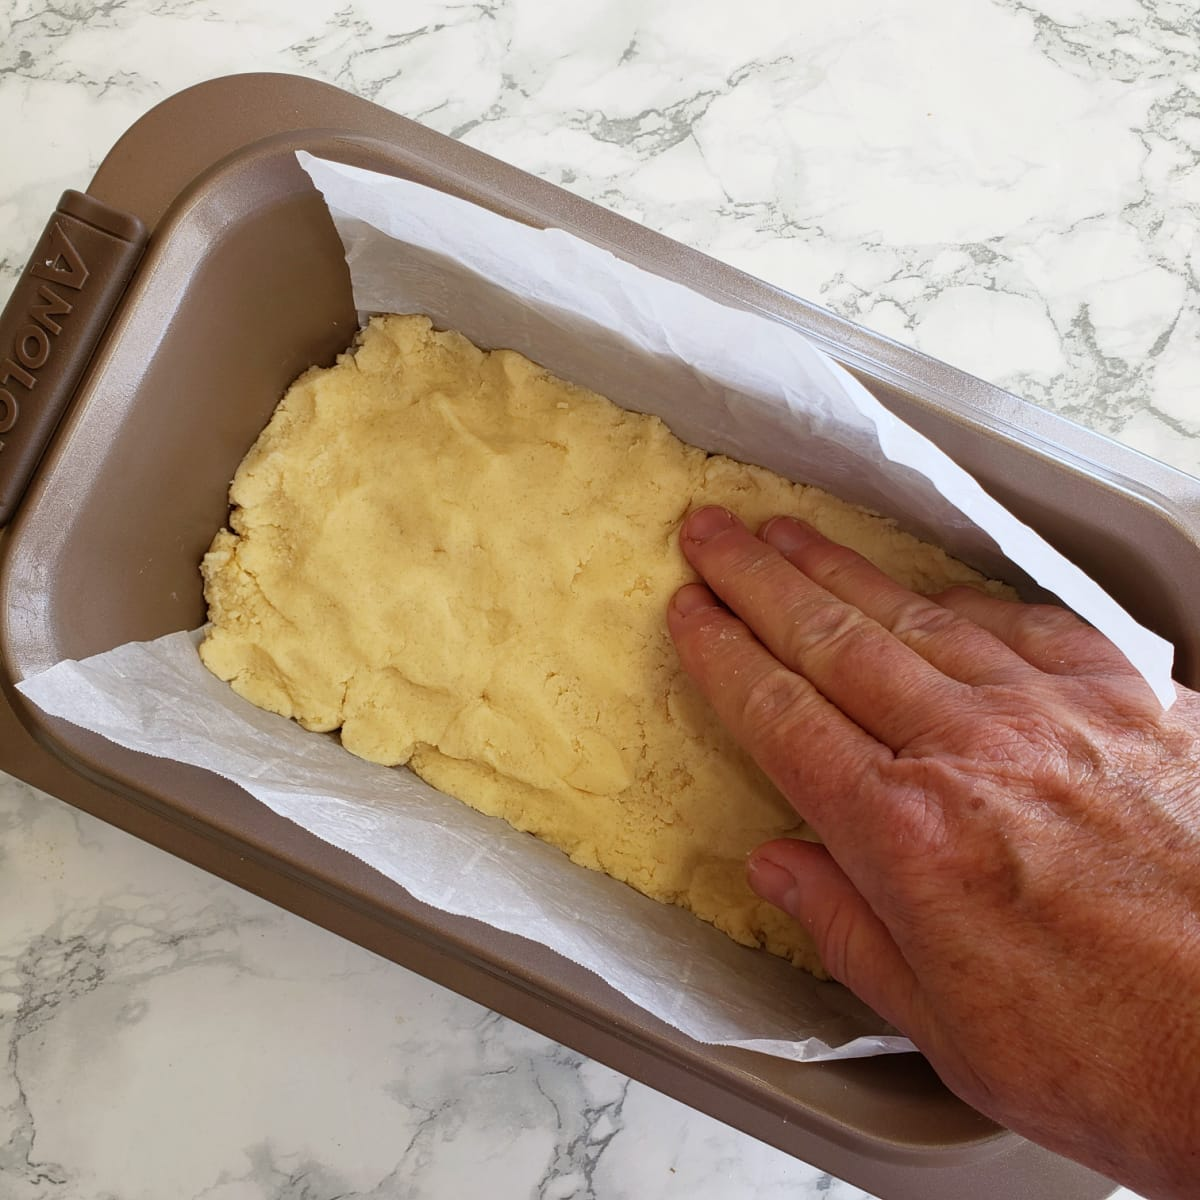 Use your hand to press the shortbread dough into the pan